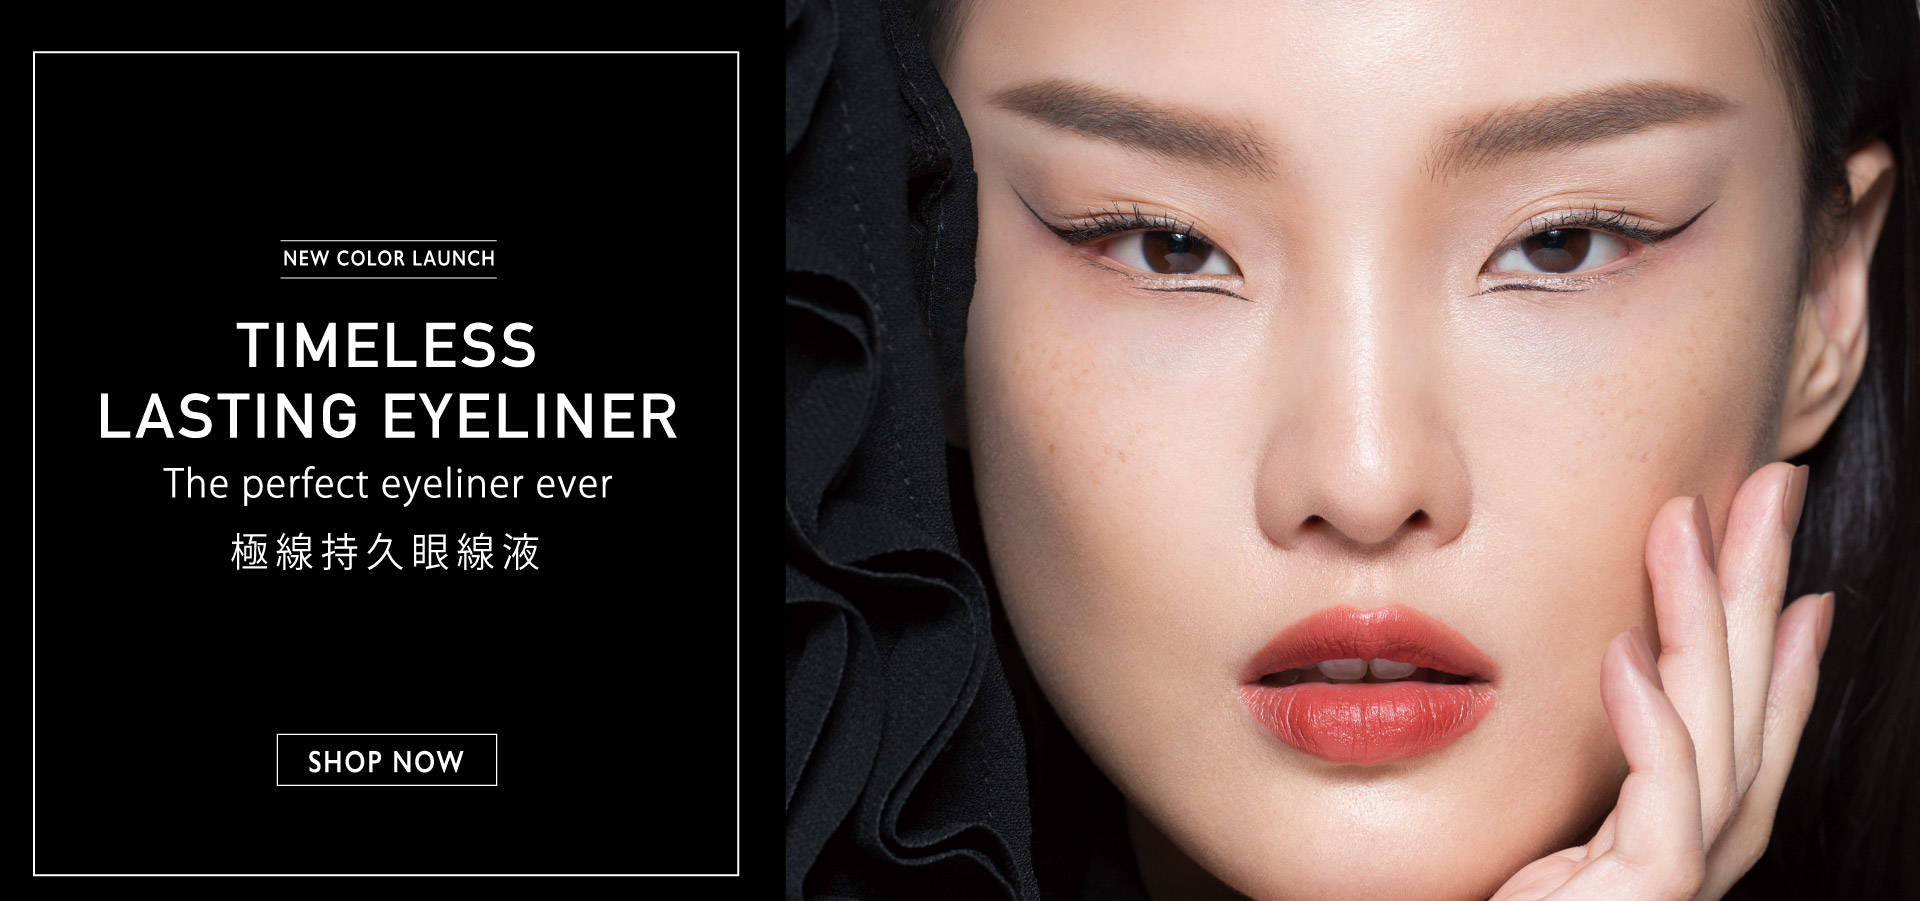 kaibeauty, eyeliner, timeless lasting eyeliner, eye, shipping, makeup, 小凱